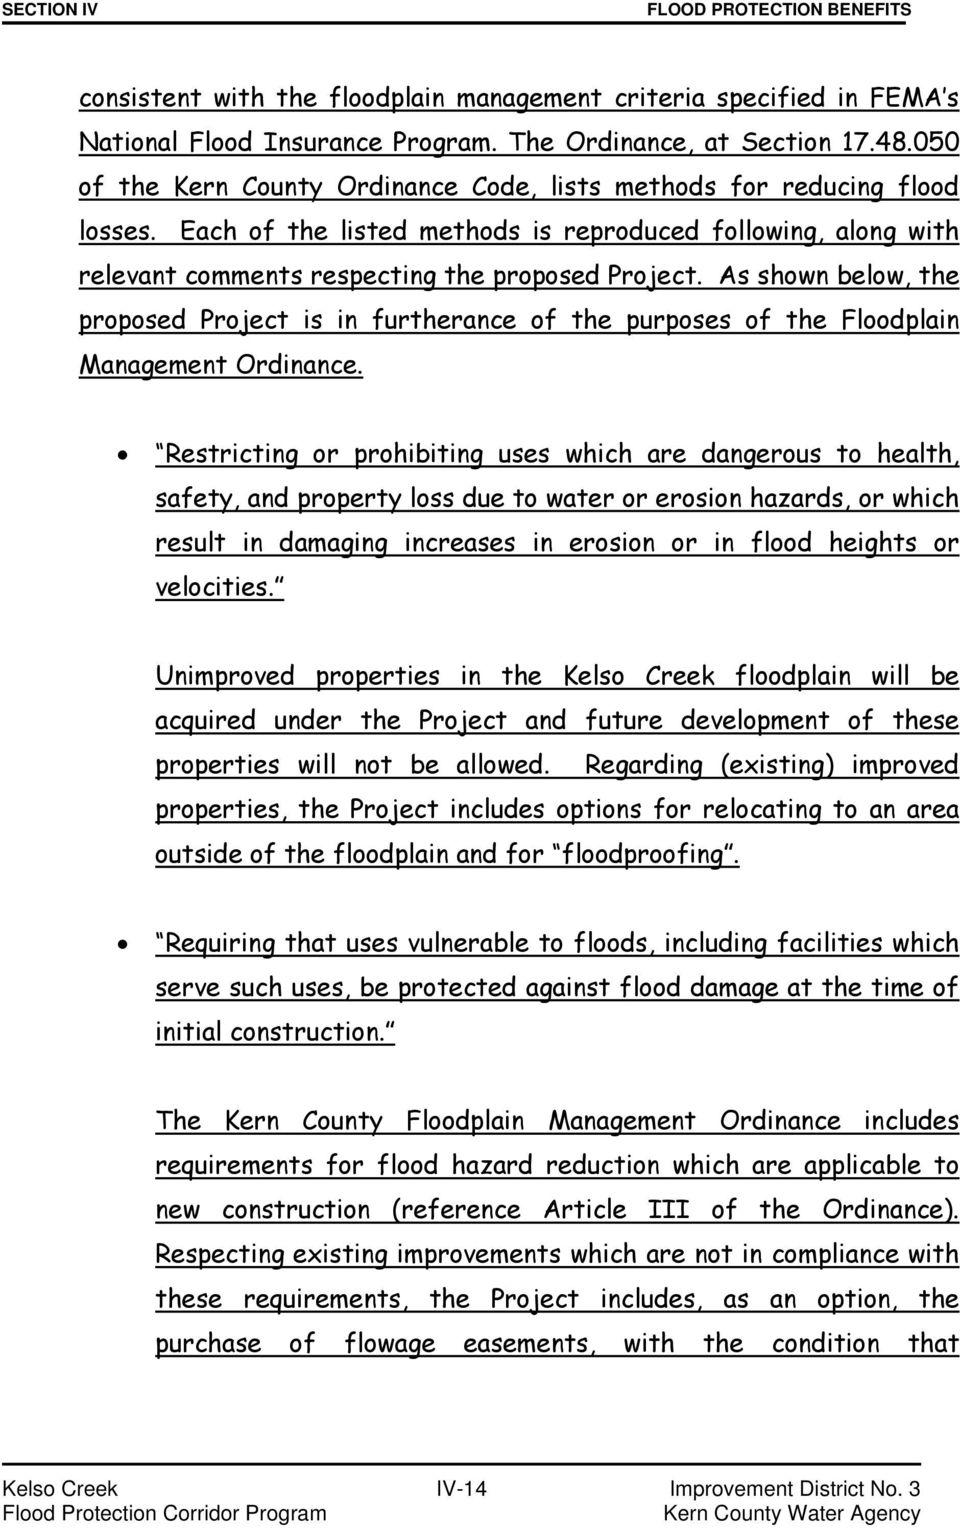 As shown below, the proposed Project is in furtherance of the purposes of the Floodplain Management Ordinance.